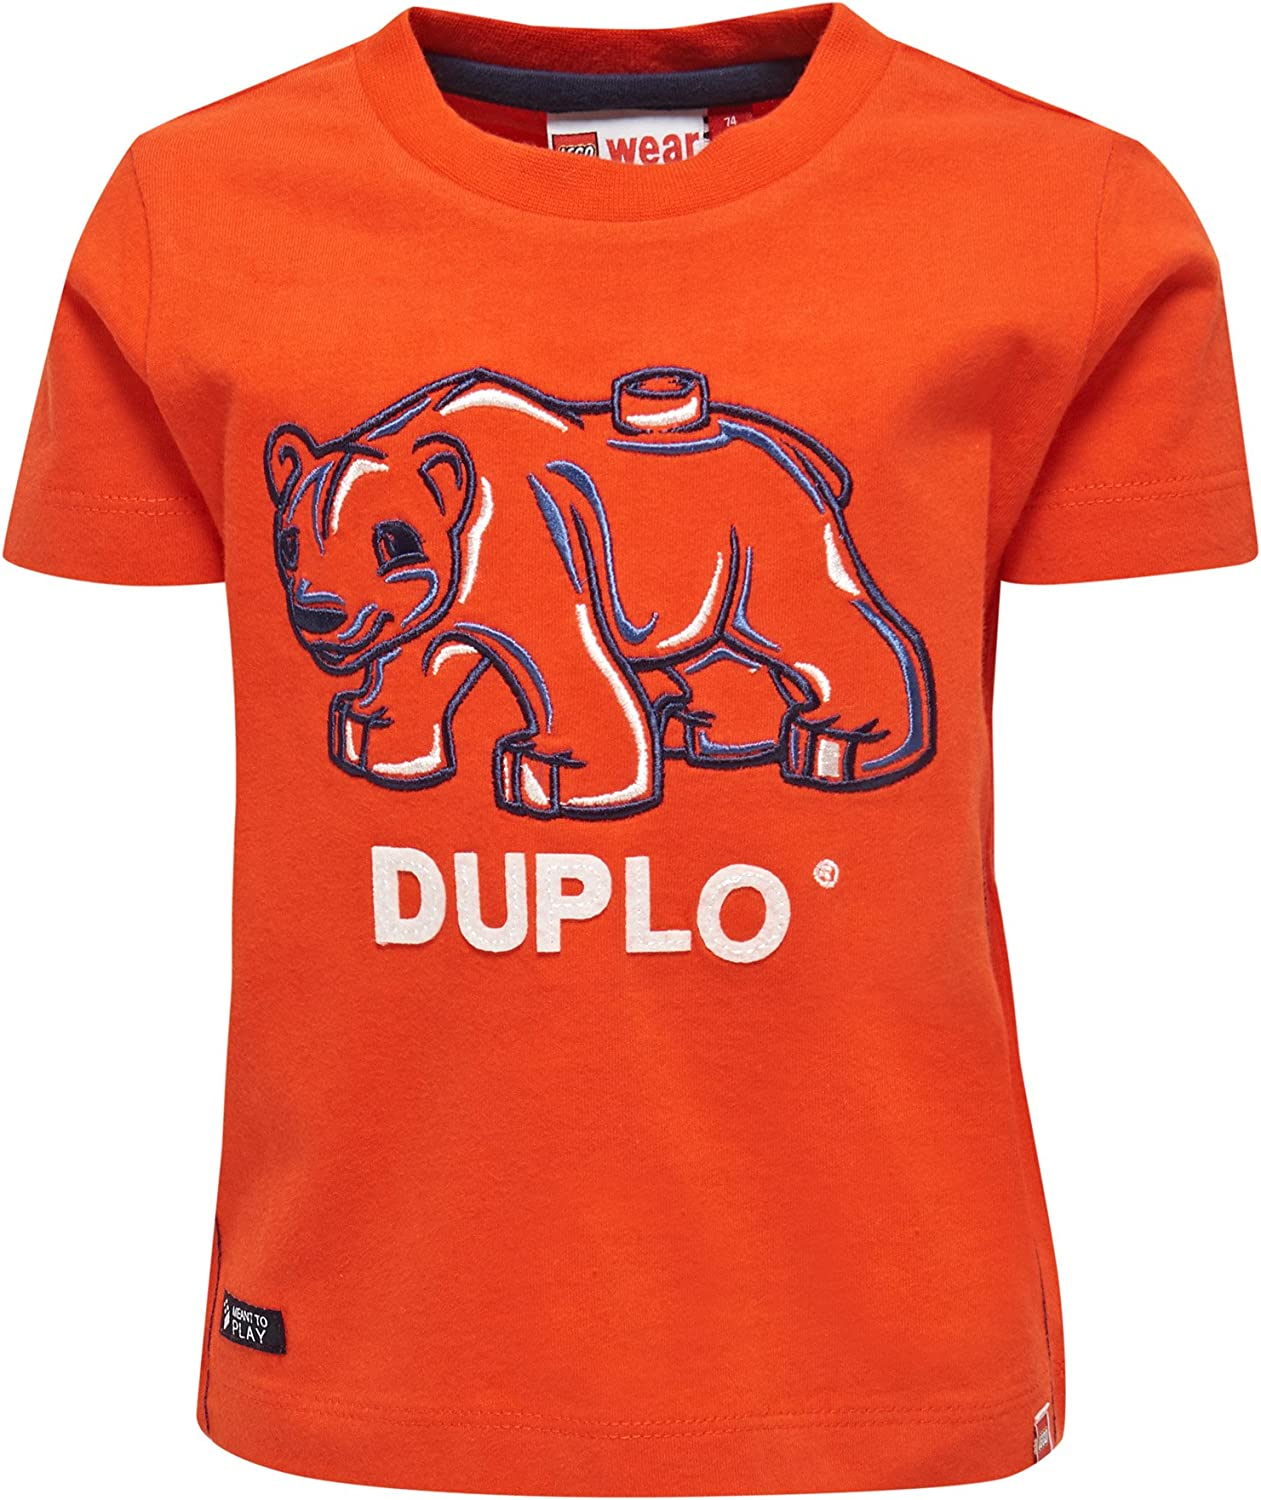 86, Red LEGO Duplo Texas 601 Tshirt